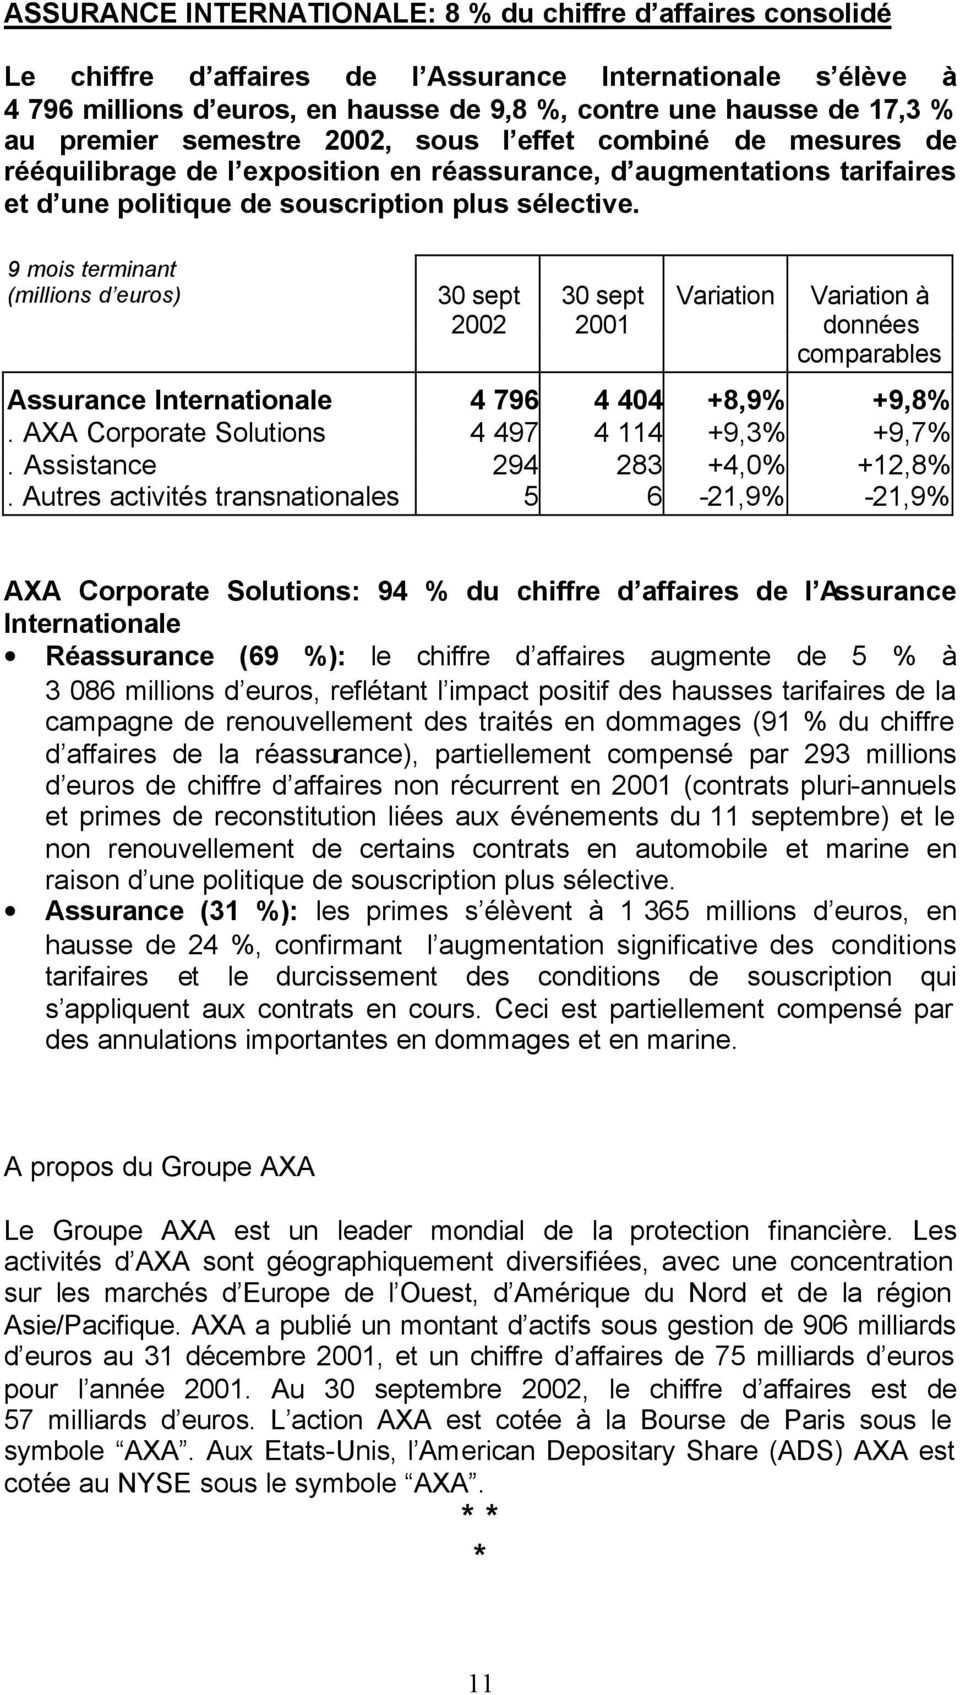 9 mois terminant (millions d euros) 2002 2001 Variation Assurance Internationale 4 796 4 404 +8,9% +9,8%. AXA Corporate Solutions 4 497 4 114 +9,3% +9,7%. Assistance 294 283 +4,0% +12,8%.